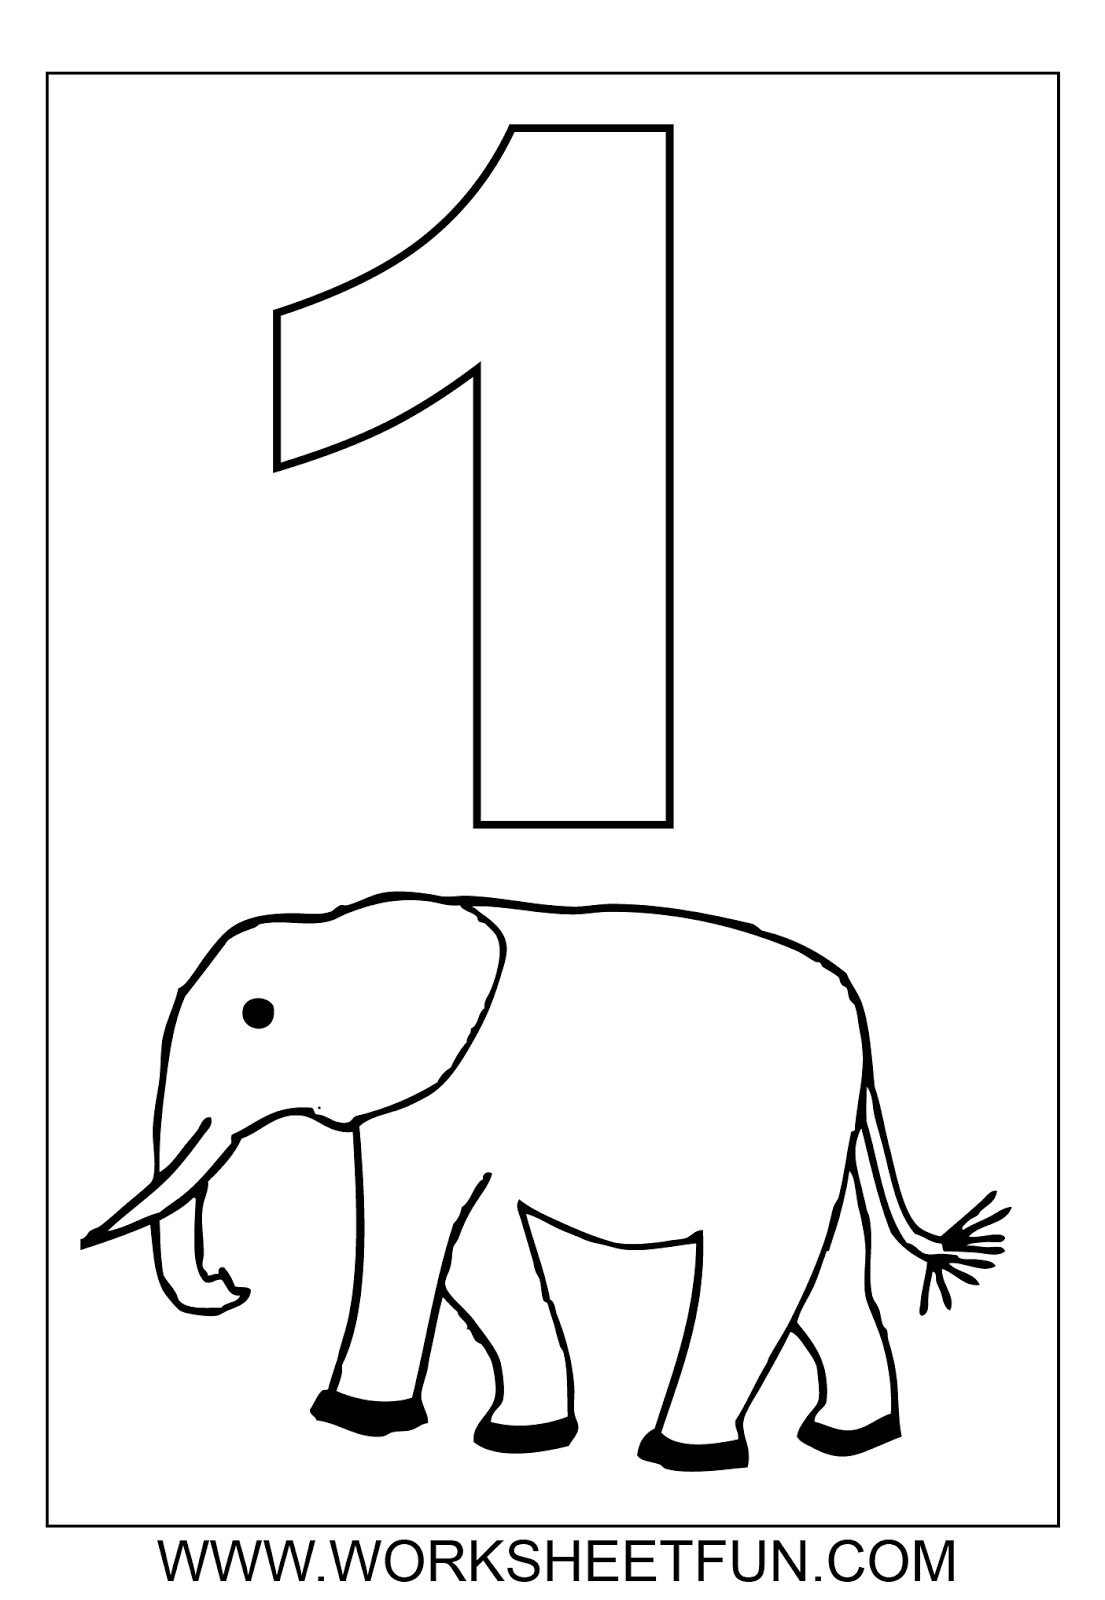 coloring number for preschool free math worksheets number coloring with images for coloring preschool number